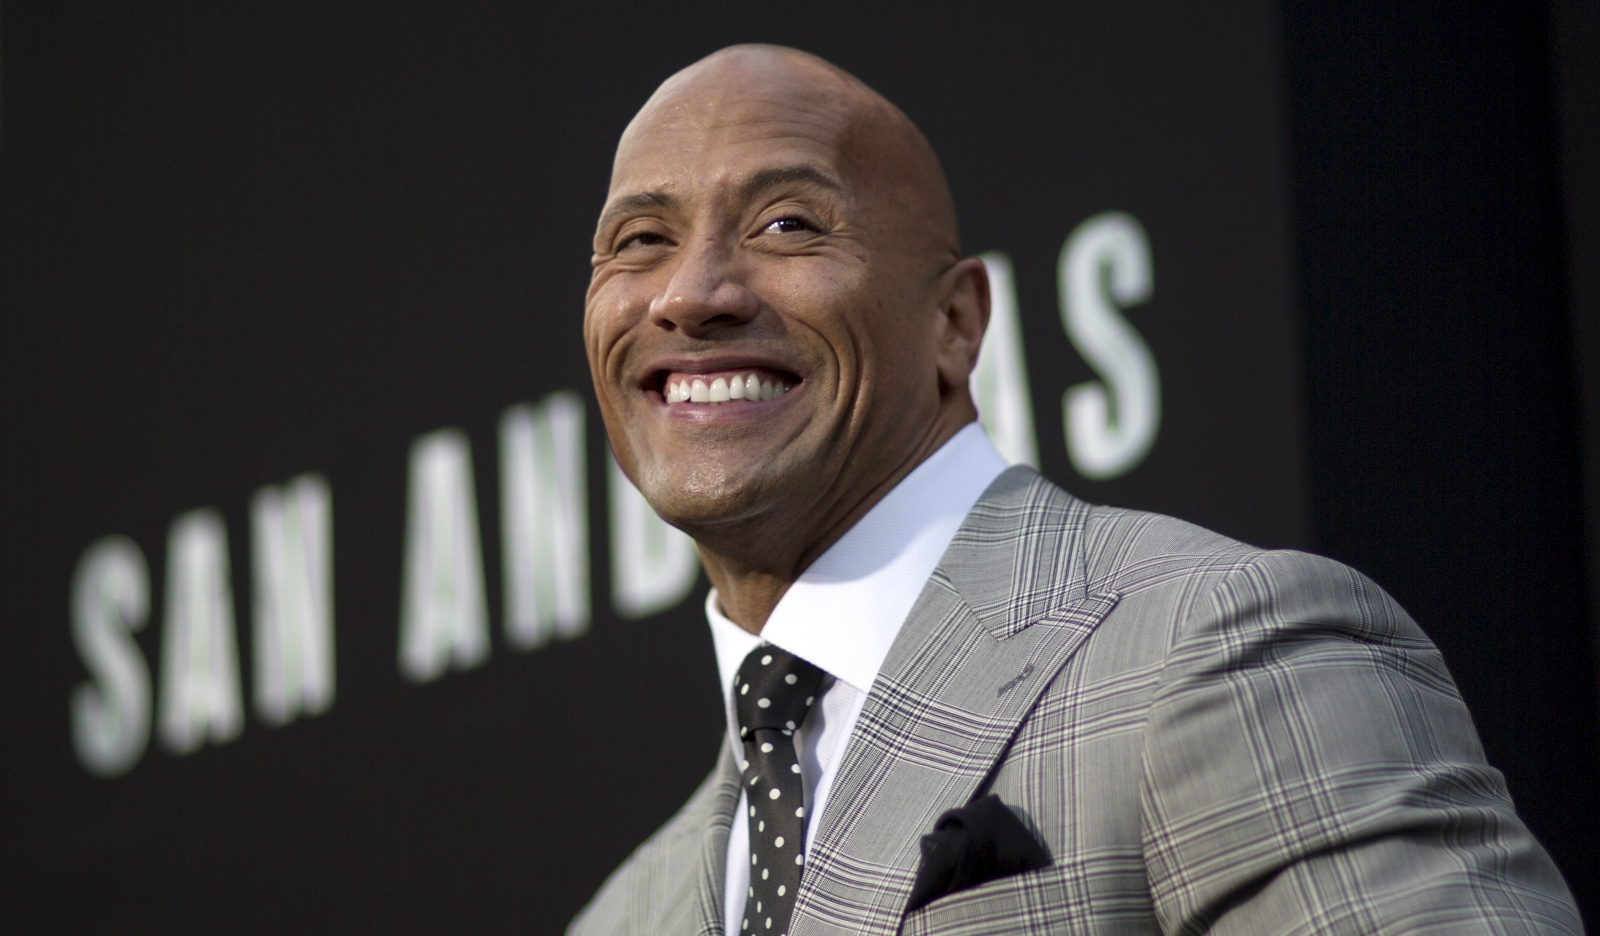 Dwayne Johnson on Baywatch: 'People peeing themselves from laughing'